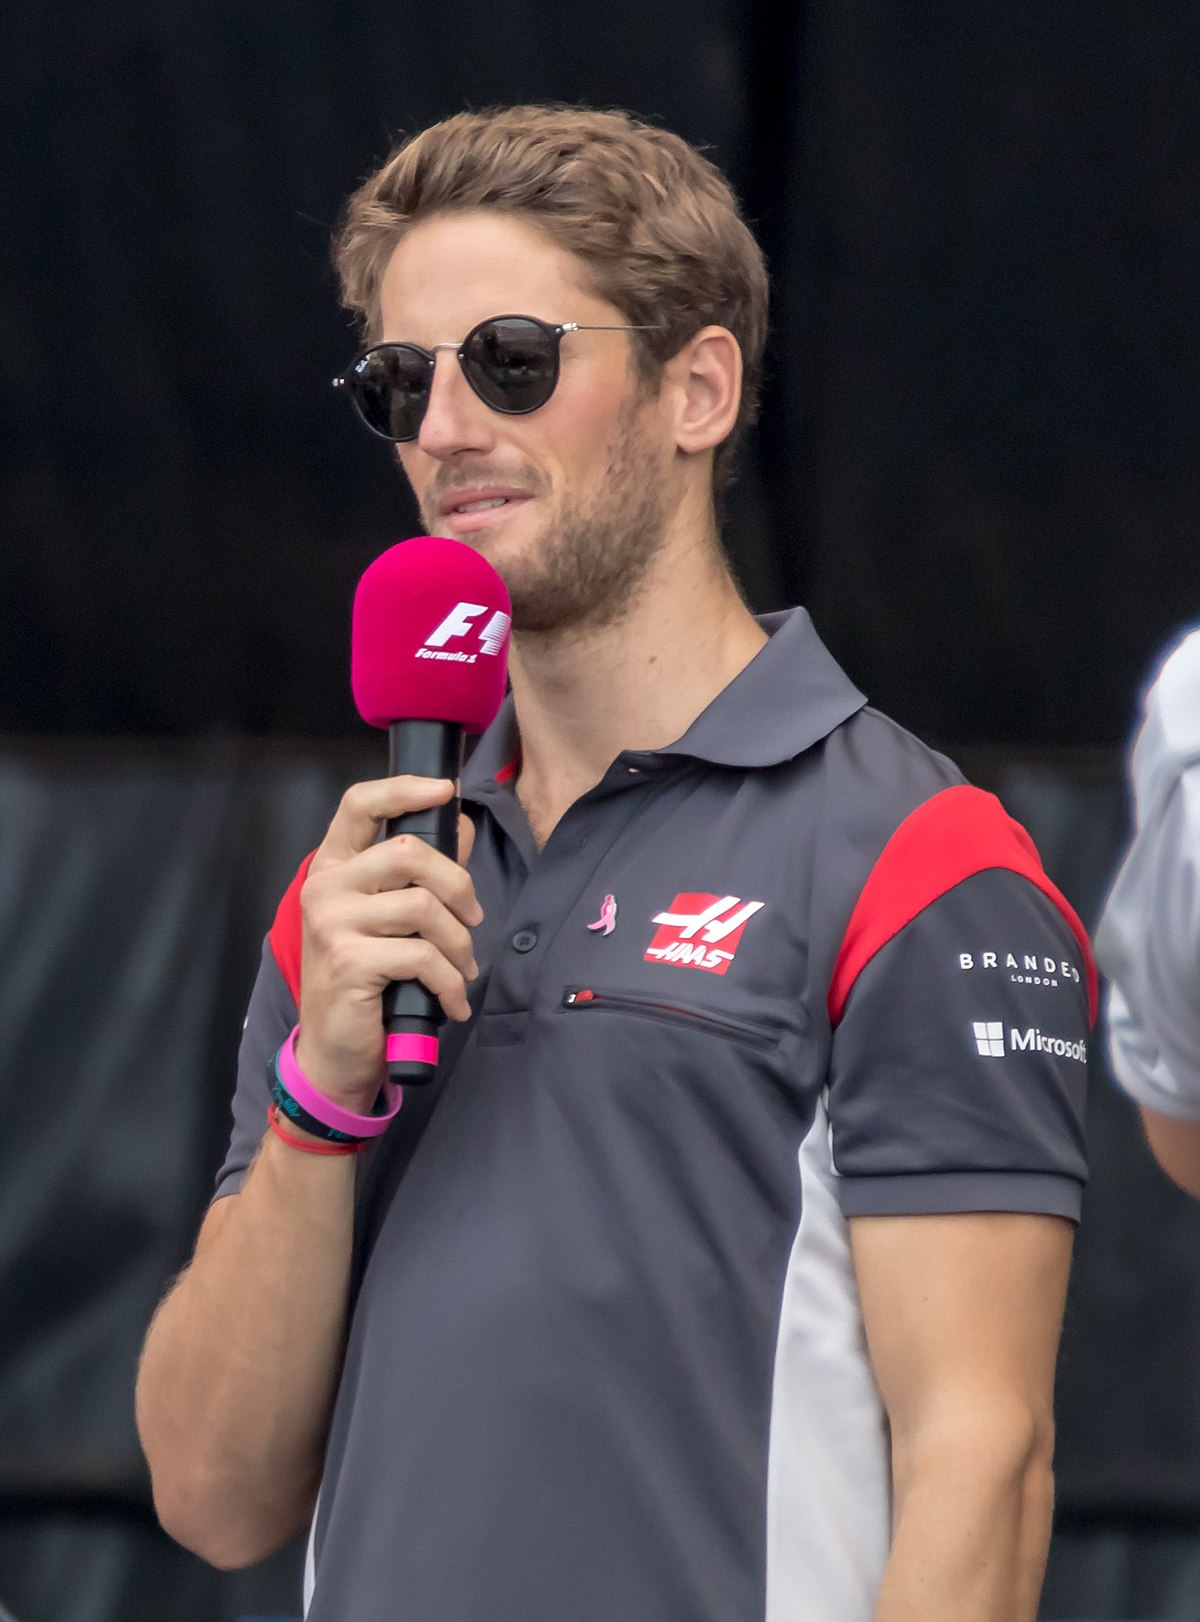 Romain Grosjean Wikipedia